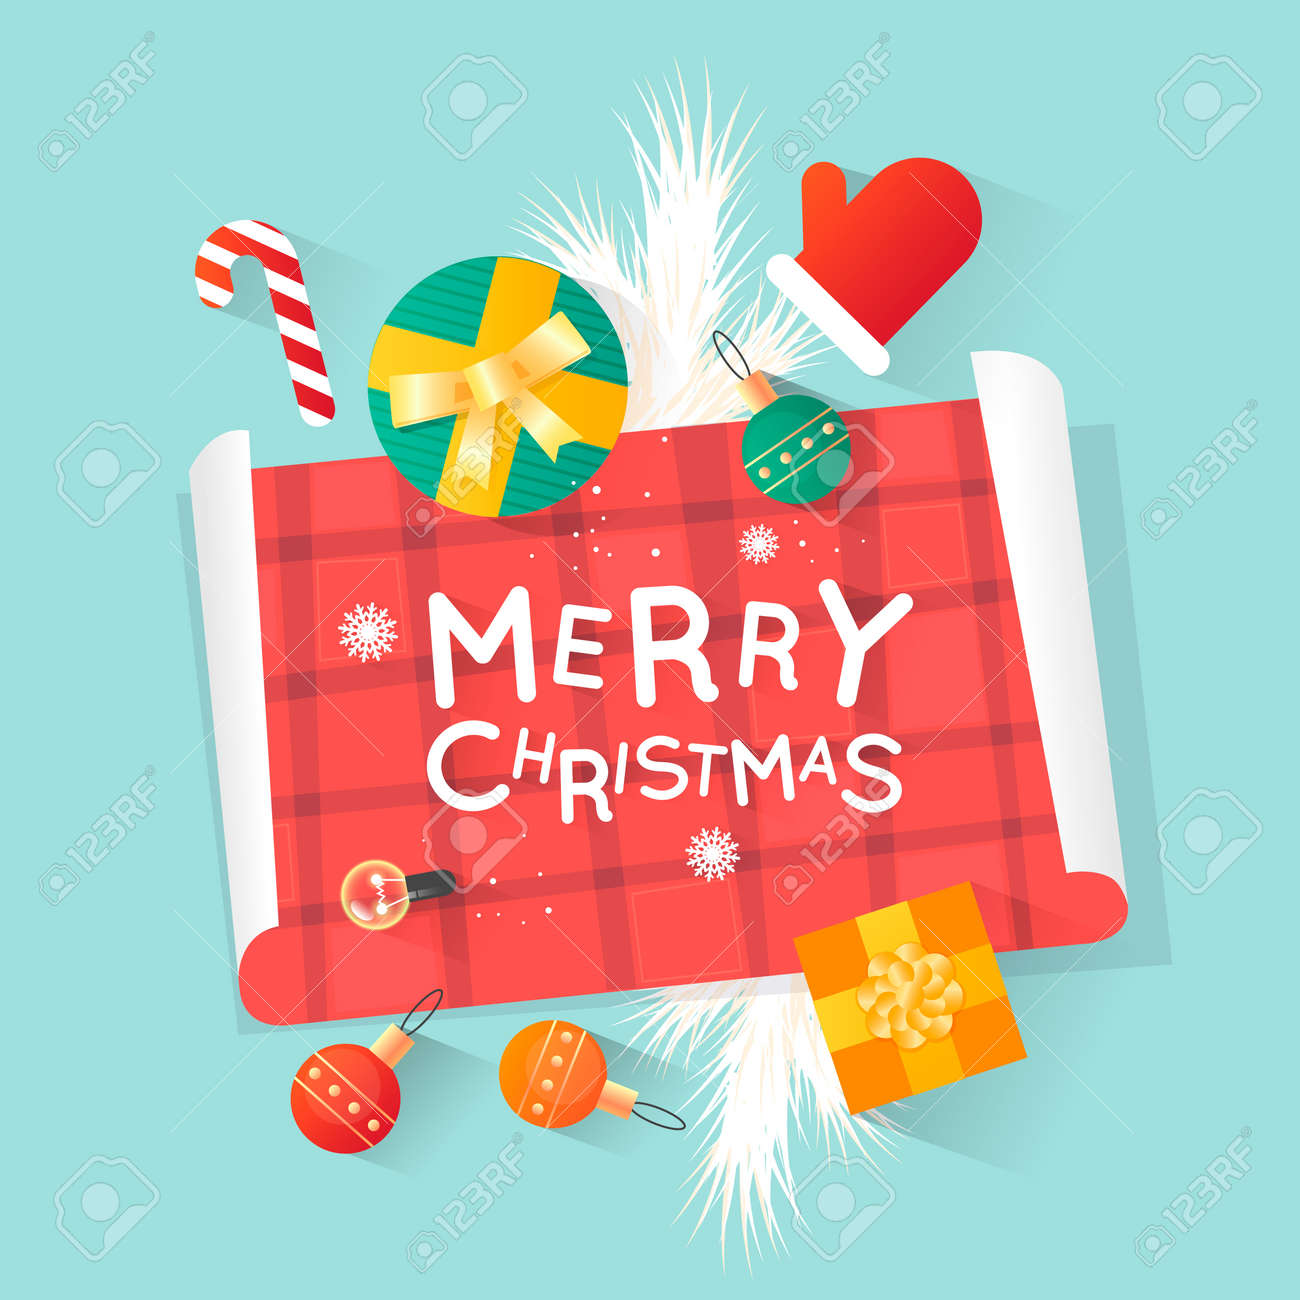 Merry Christmas and Happy New Year. New Year's toys, gifts on the table top view and text. Postcard, banner, printed matter, greeting card. Flat design. - 88701343